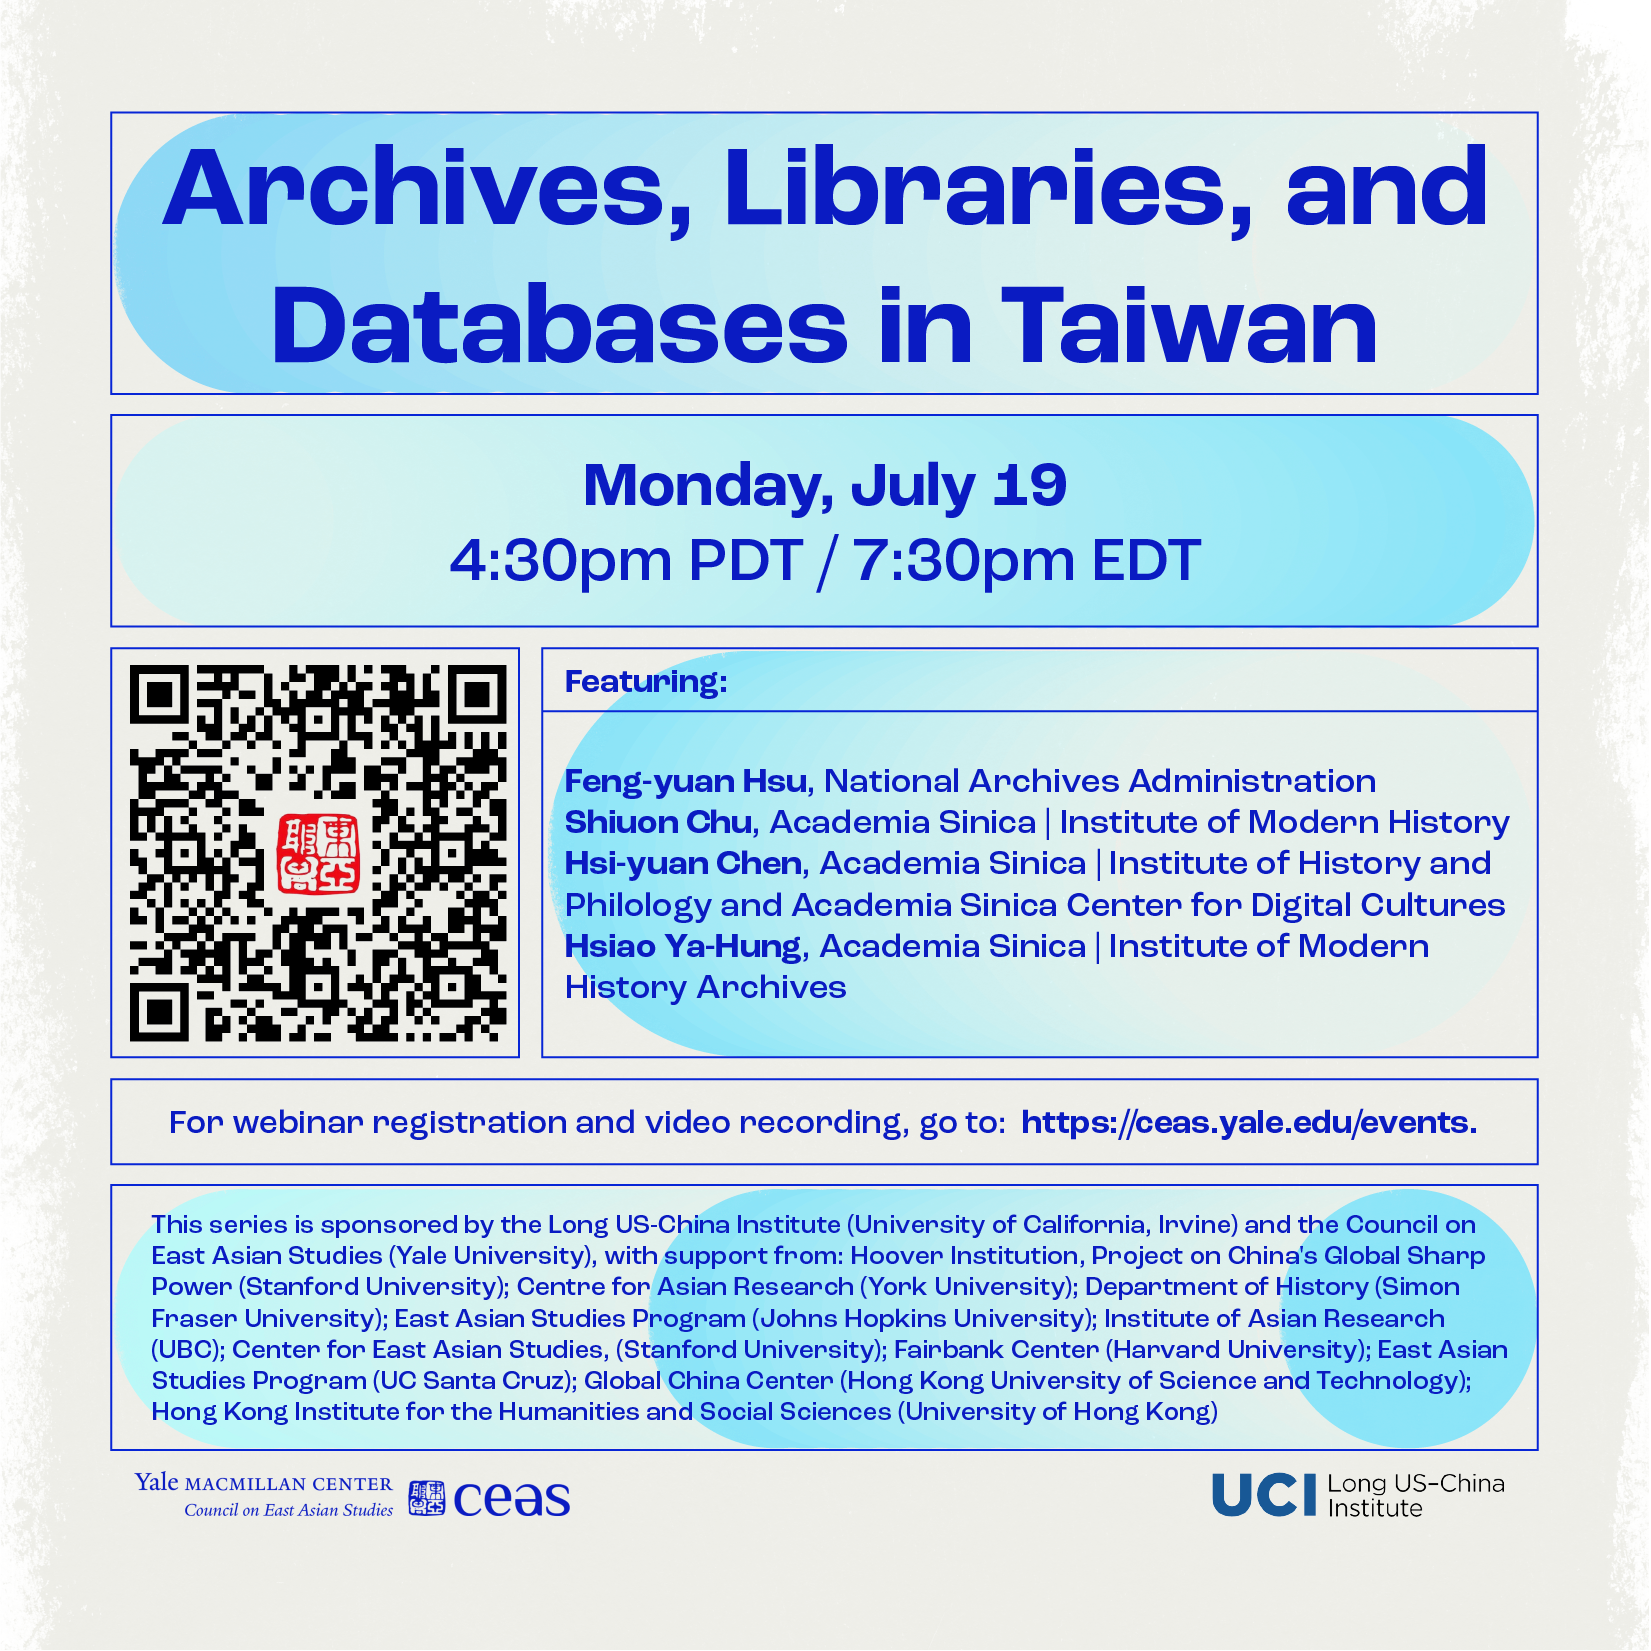 Archives, Libraries and Databases in Taiwan